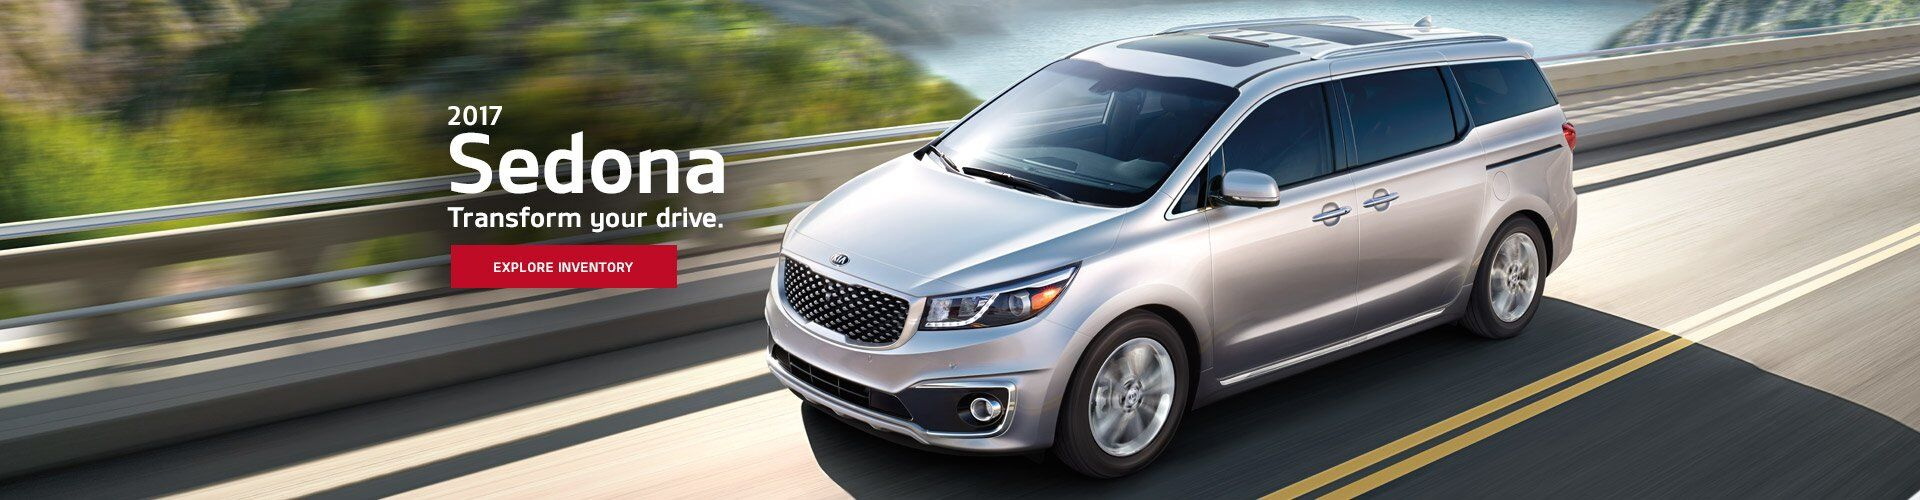 New Kia Sedona at Zamora KIA